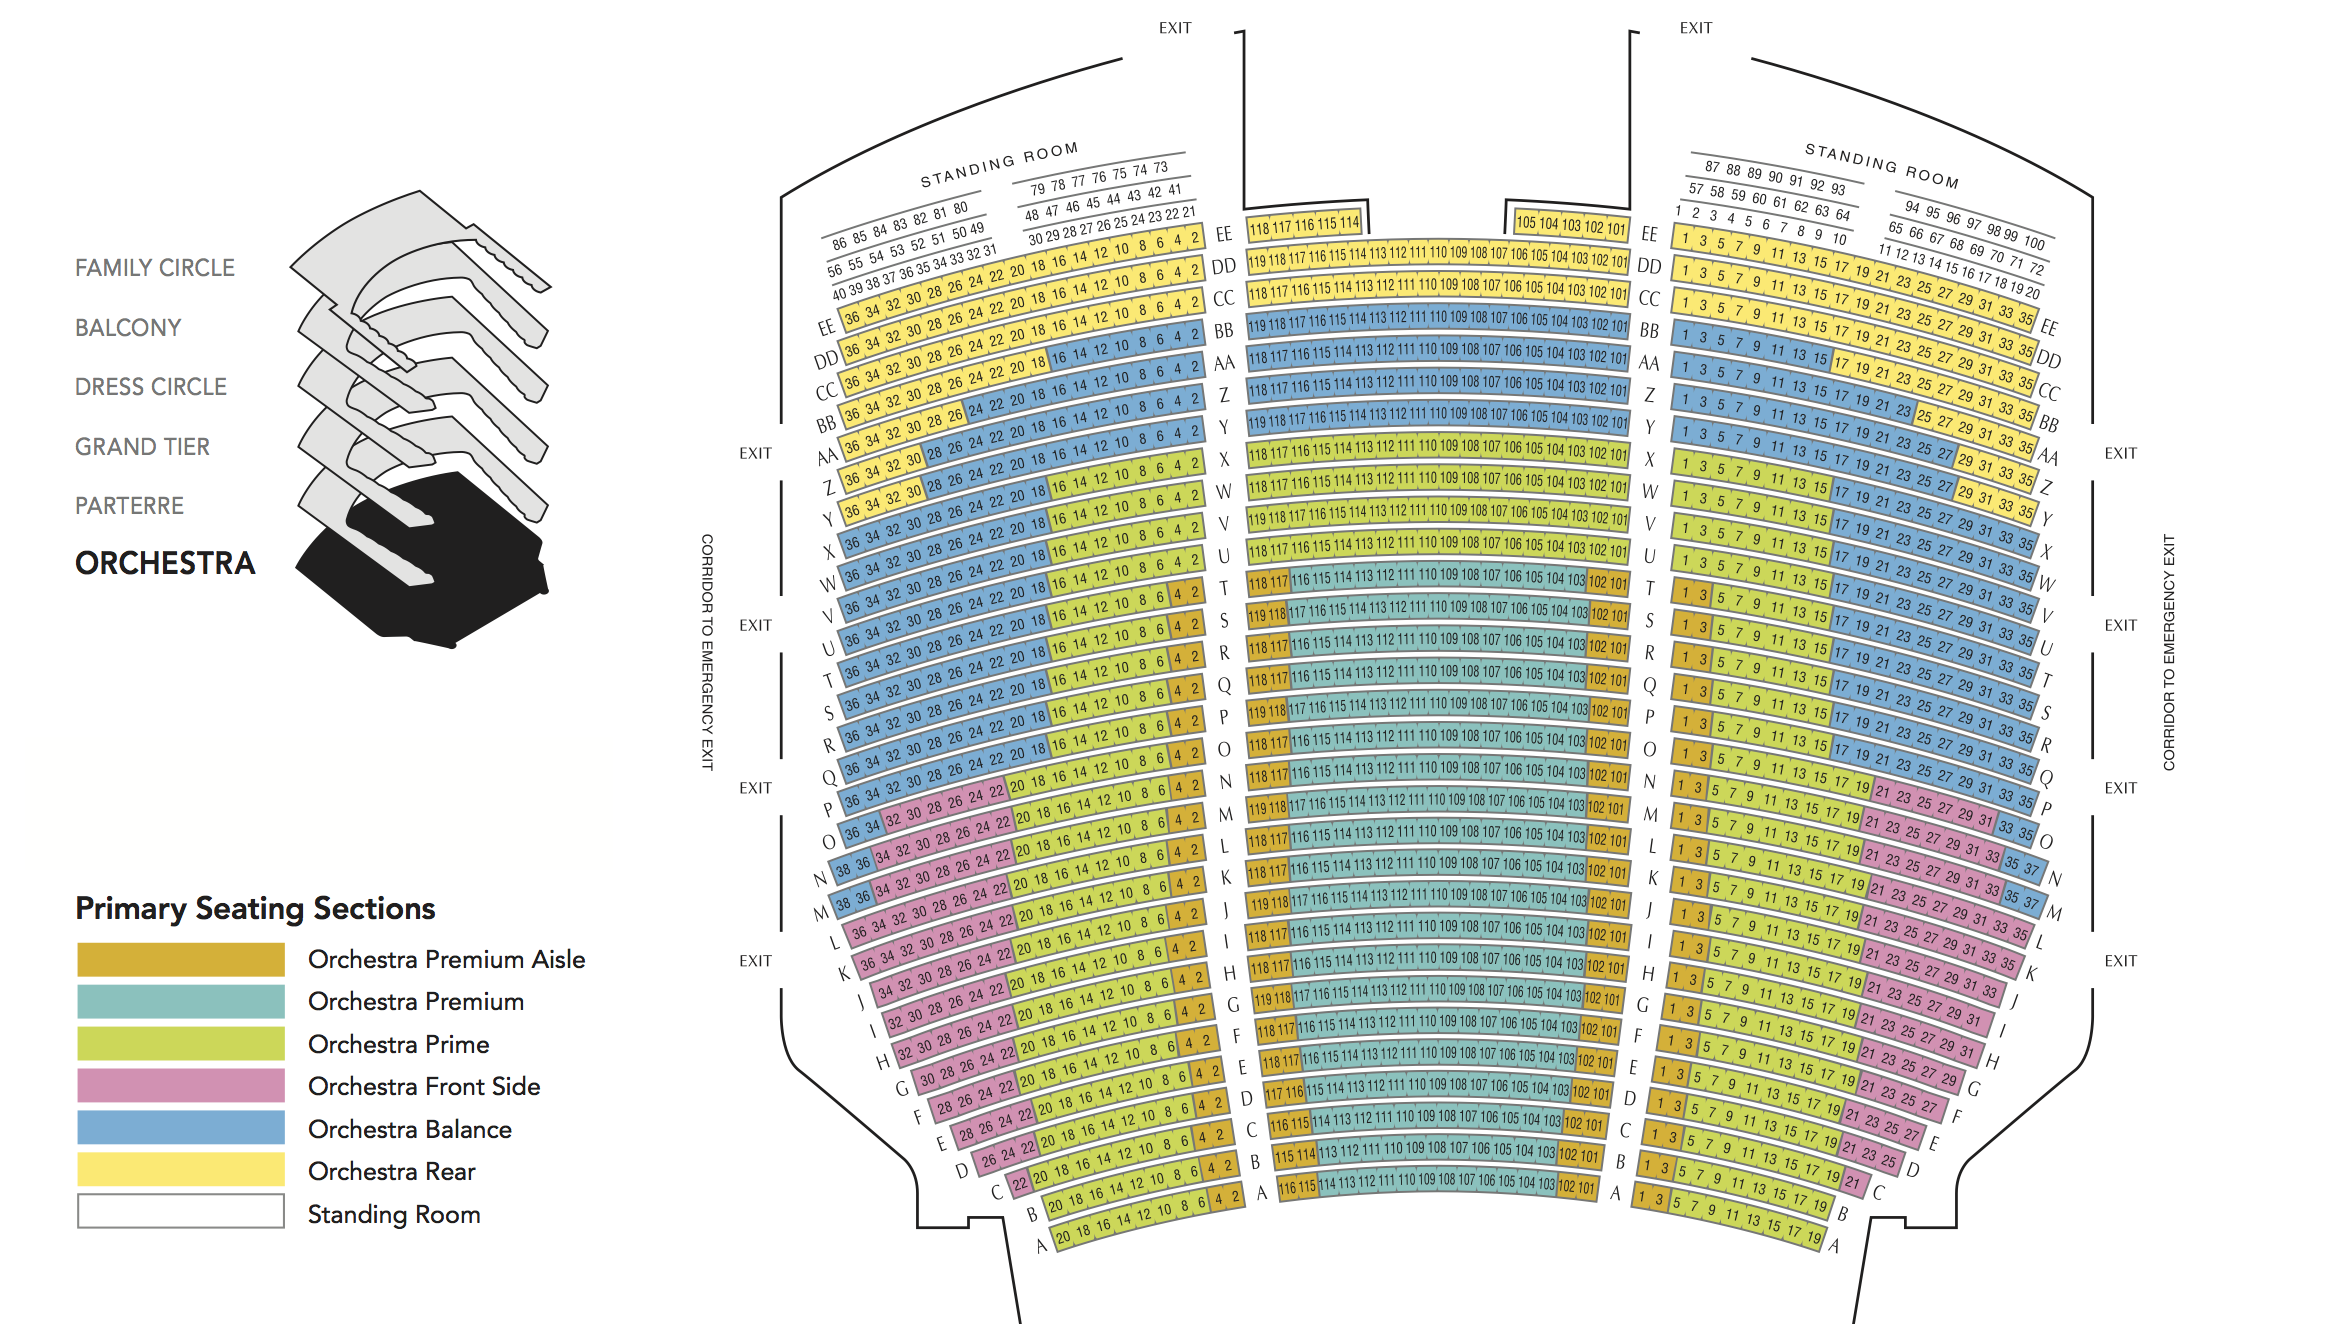 Met opera seating chart detailed www microfinanceindia org